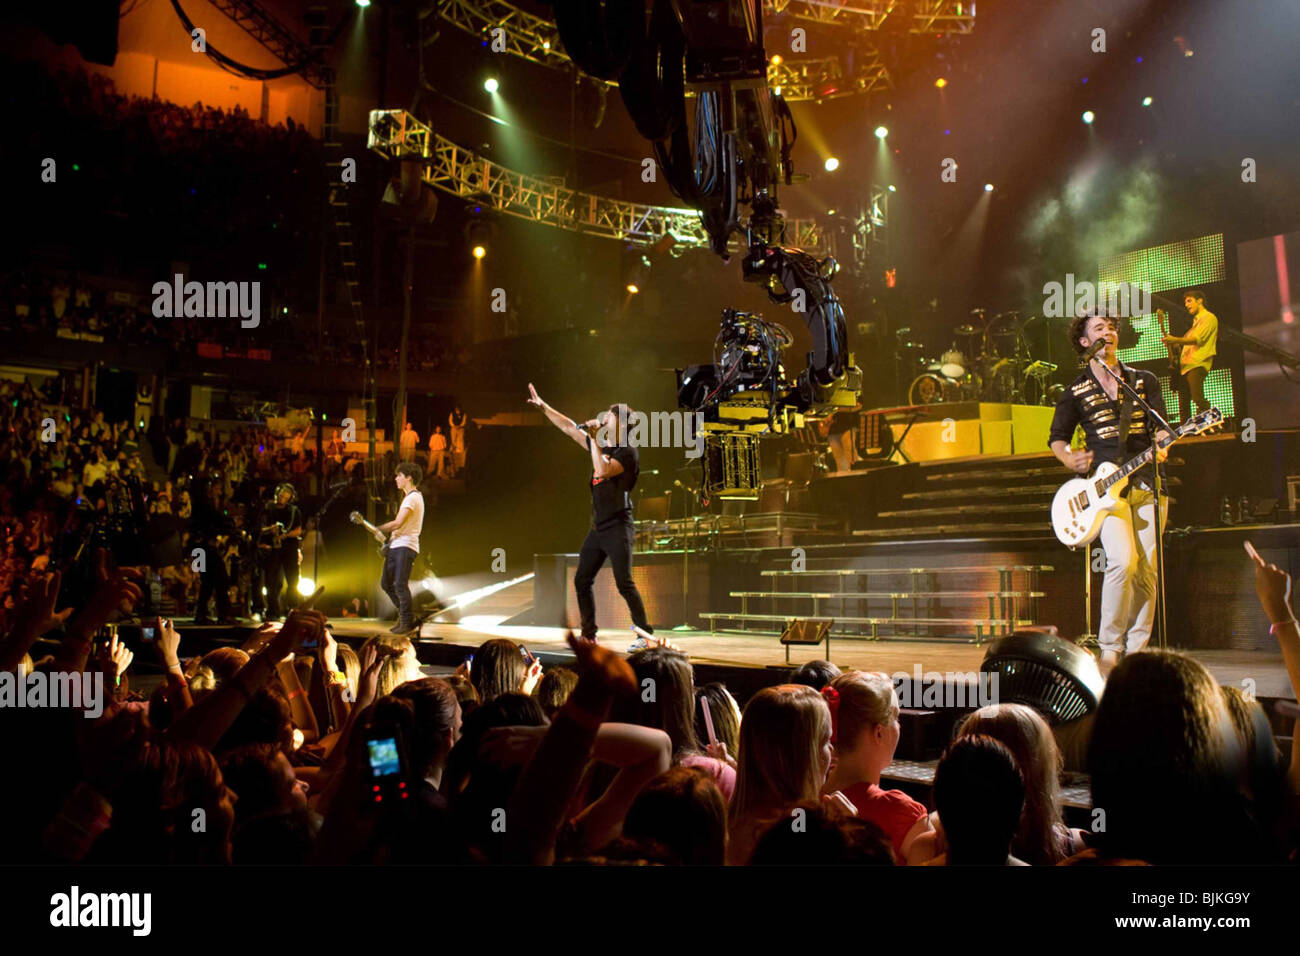 Concert Stock Photos & Concert Stock Images - Alamy